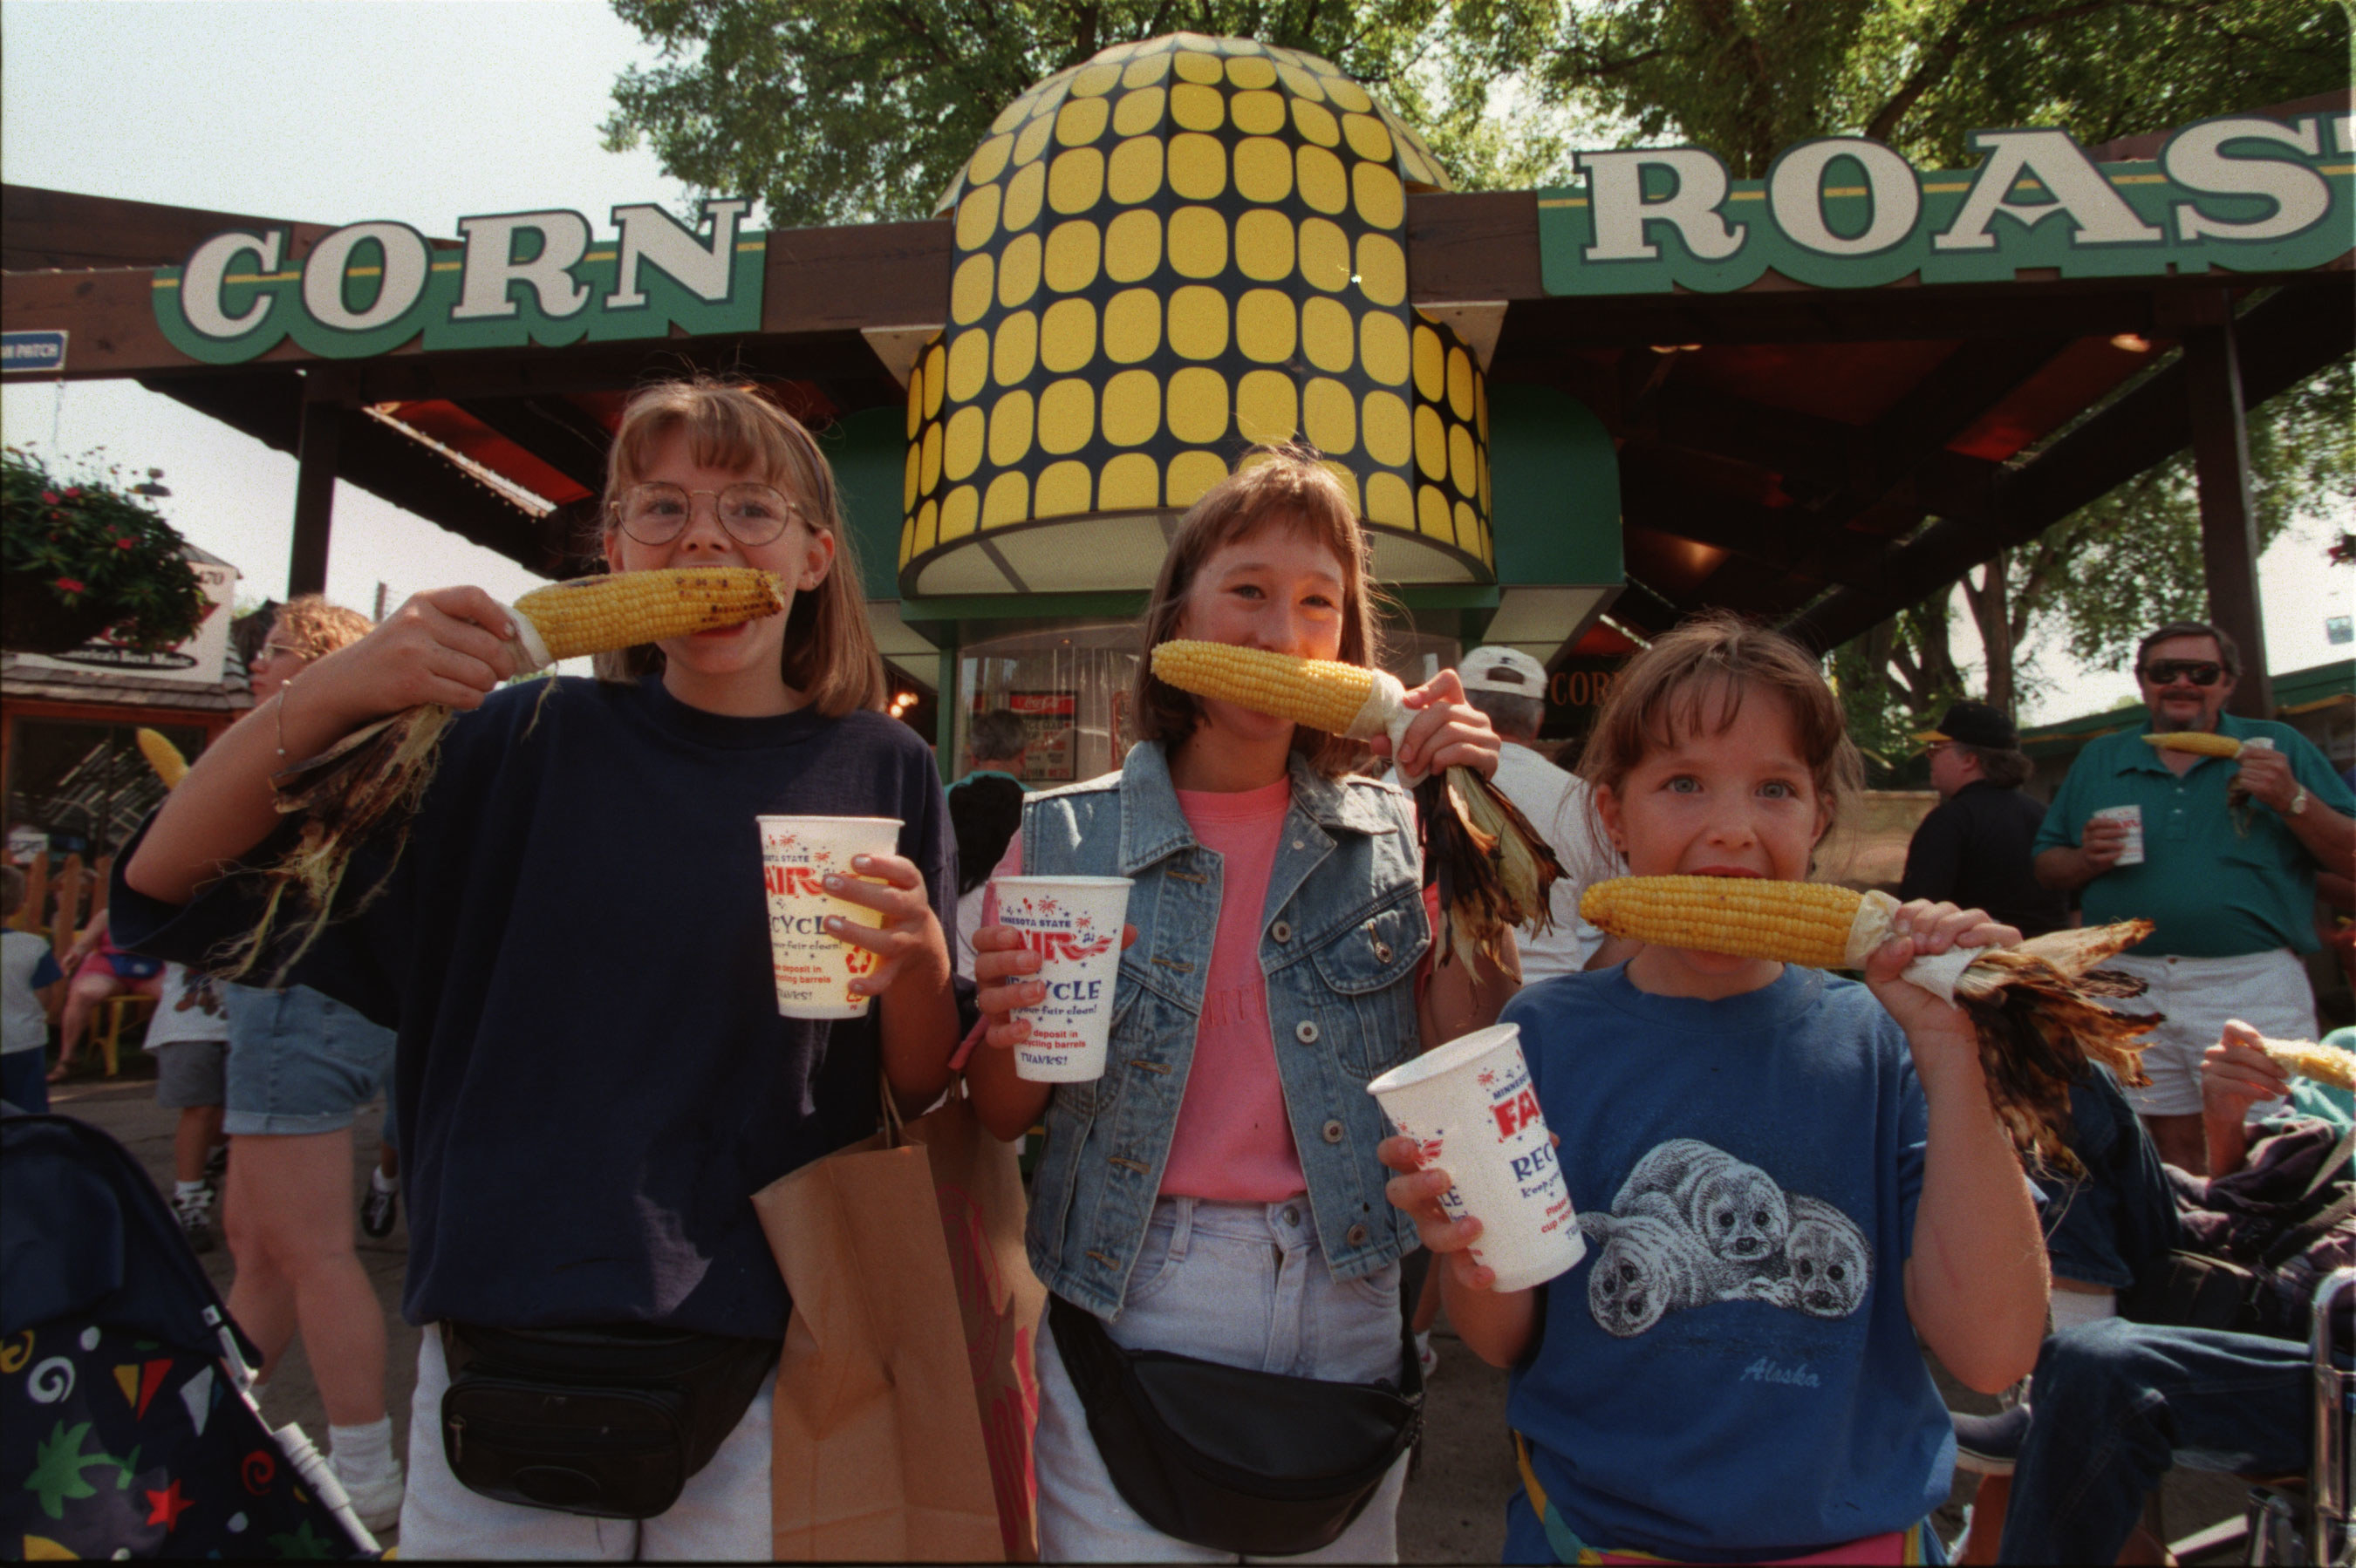 Three young females hold up corn on the cob and hold cups at the state fair